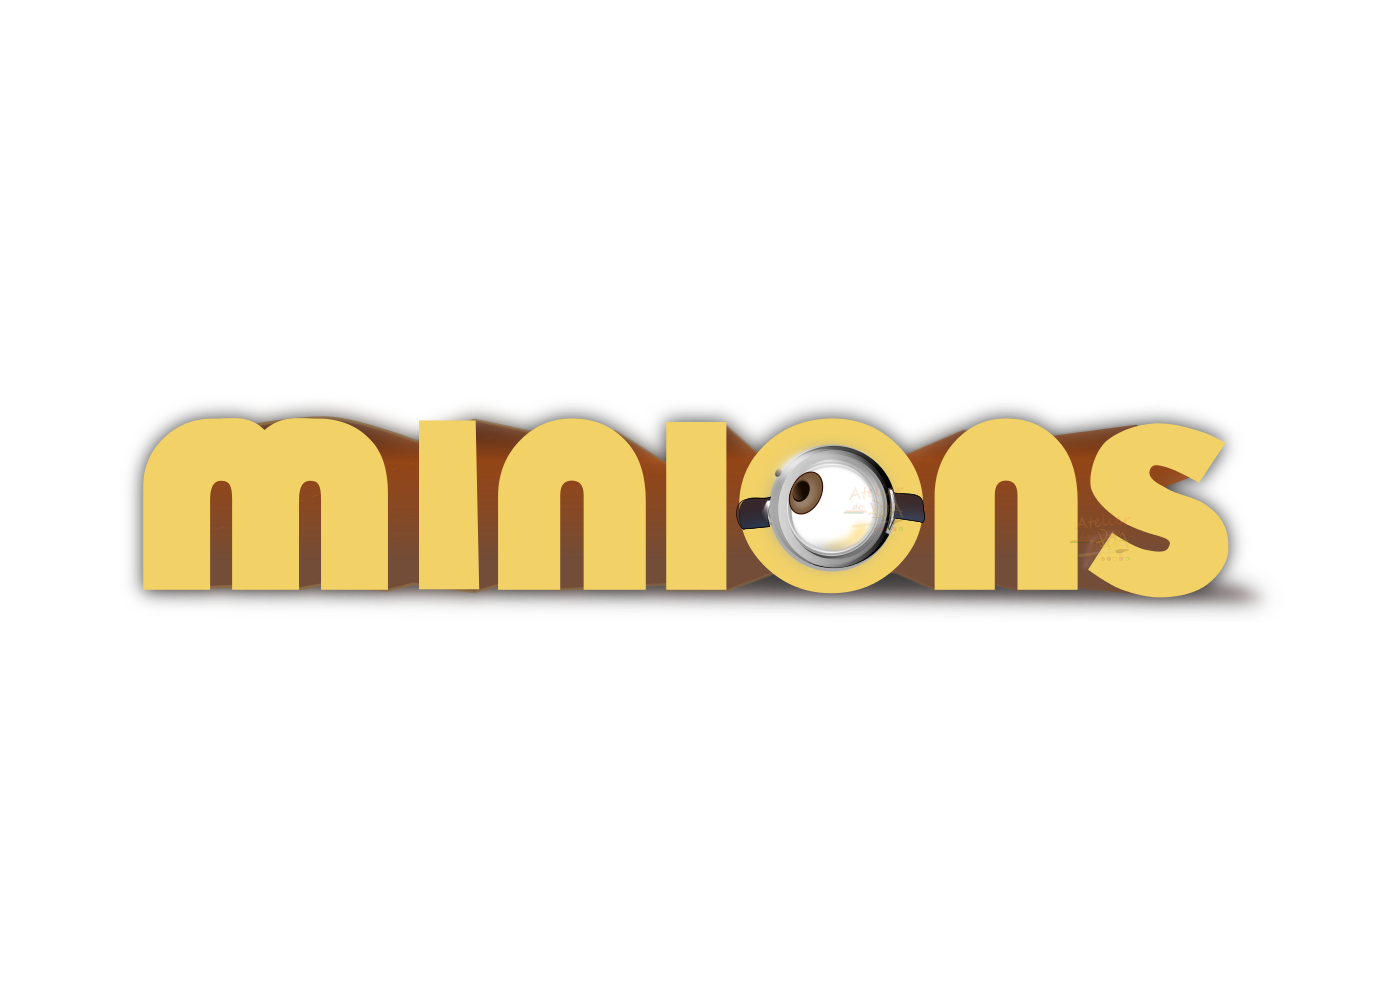 Minions logo png clipart images gallery for free download.